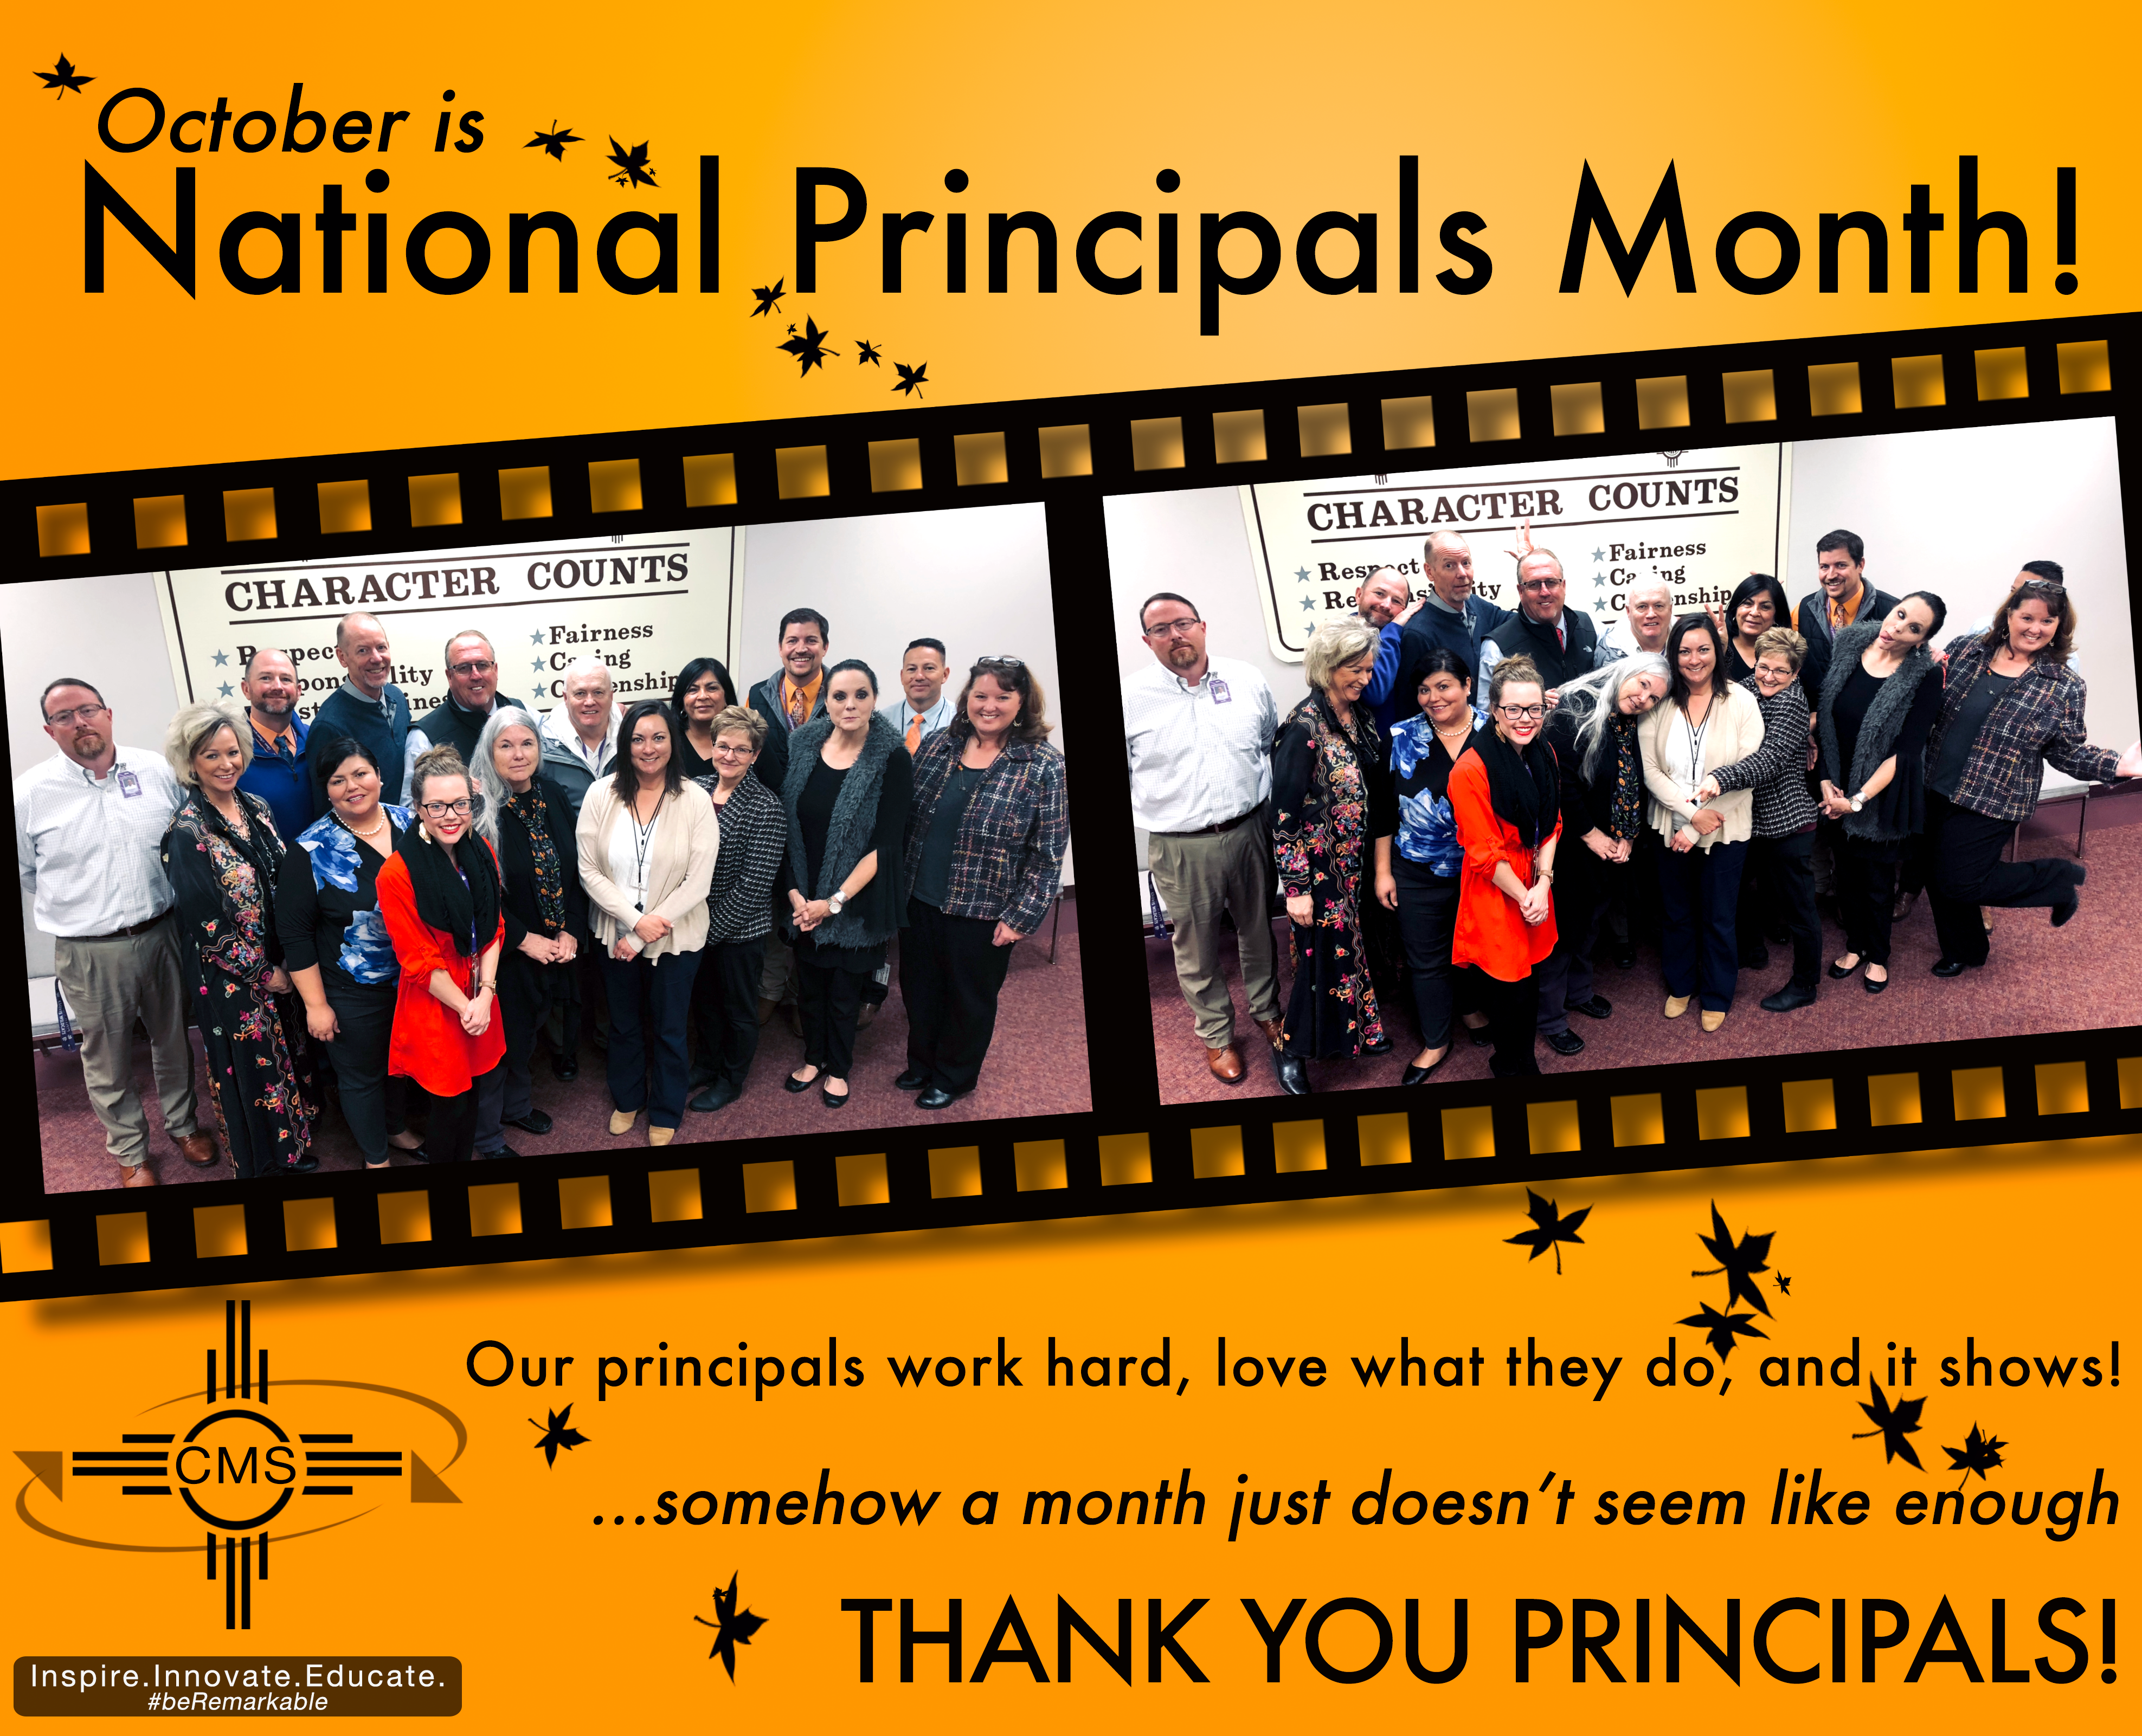 Group photo of CMS Principals with text announcing National Principals Month